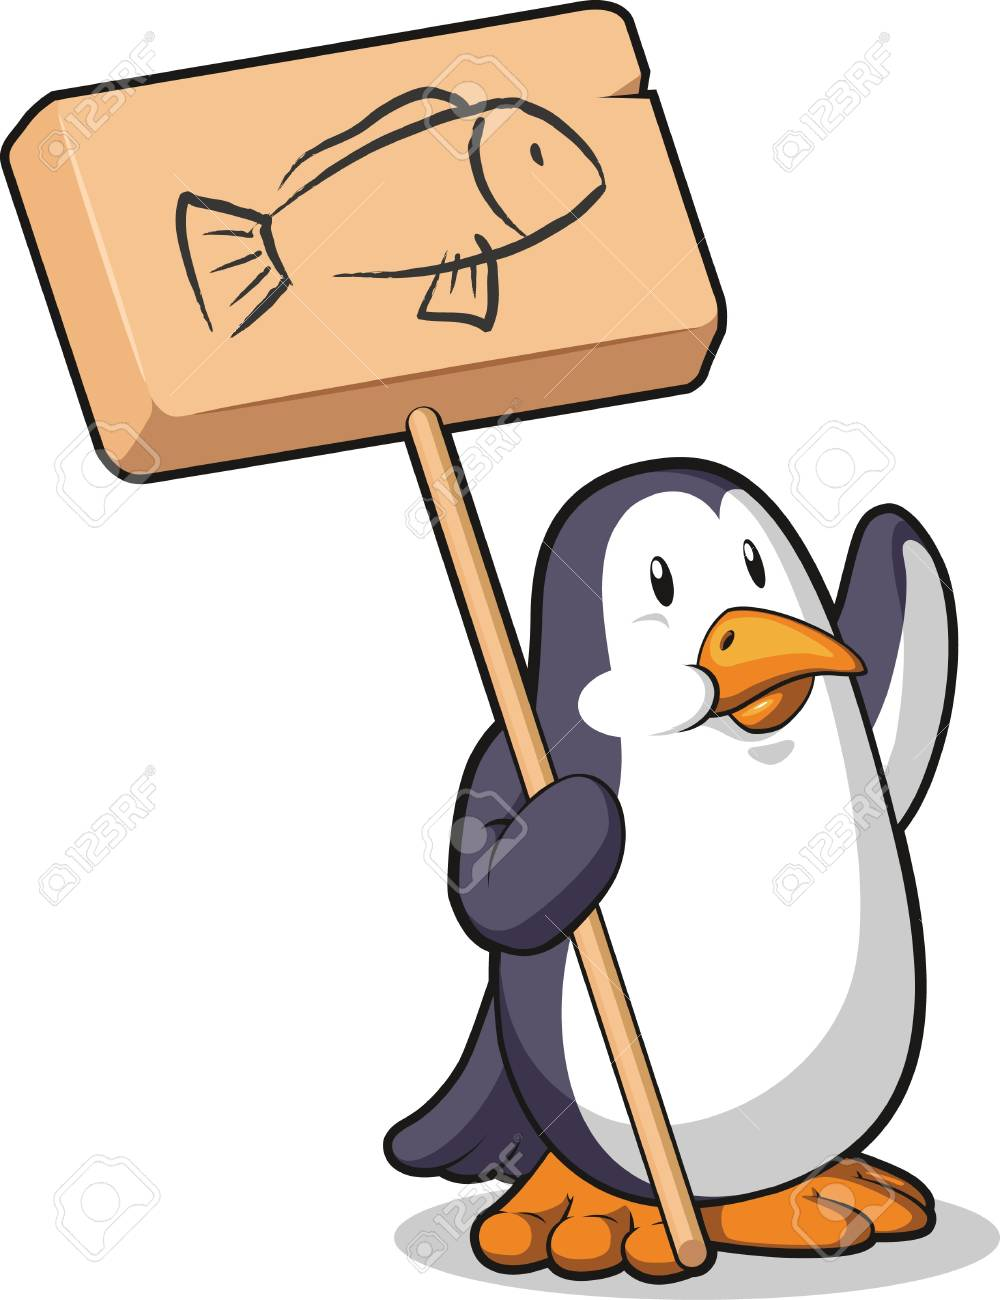 Penguin Holding a Wooden Sign Stock Vector - 16899889